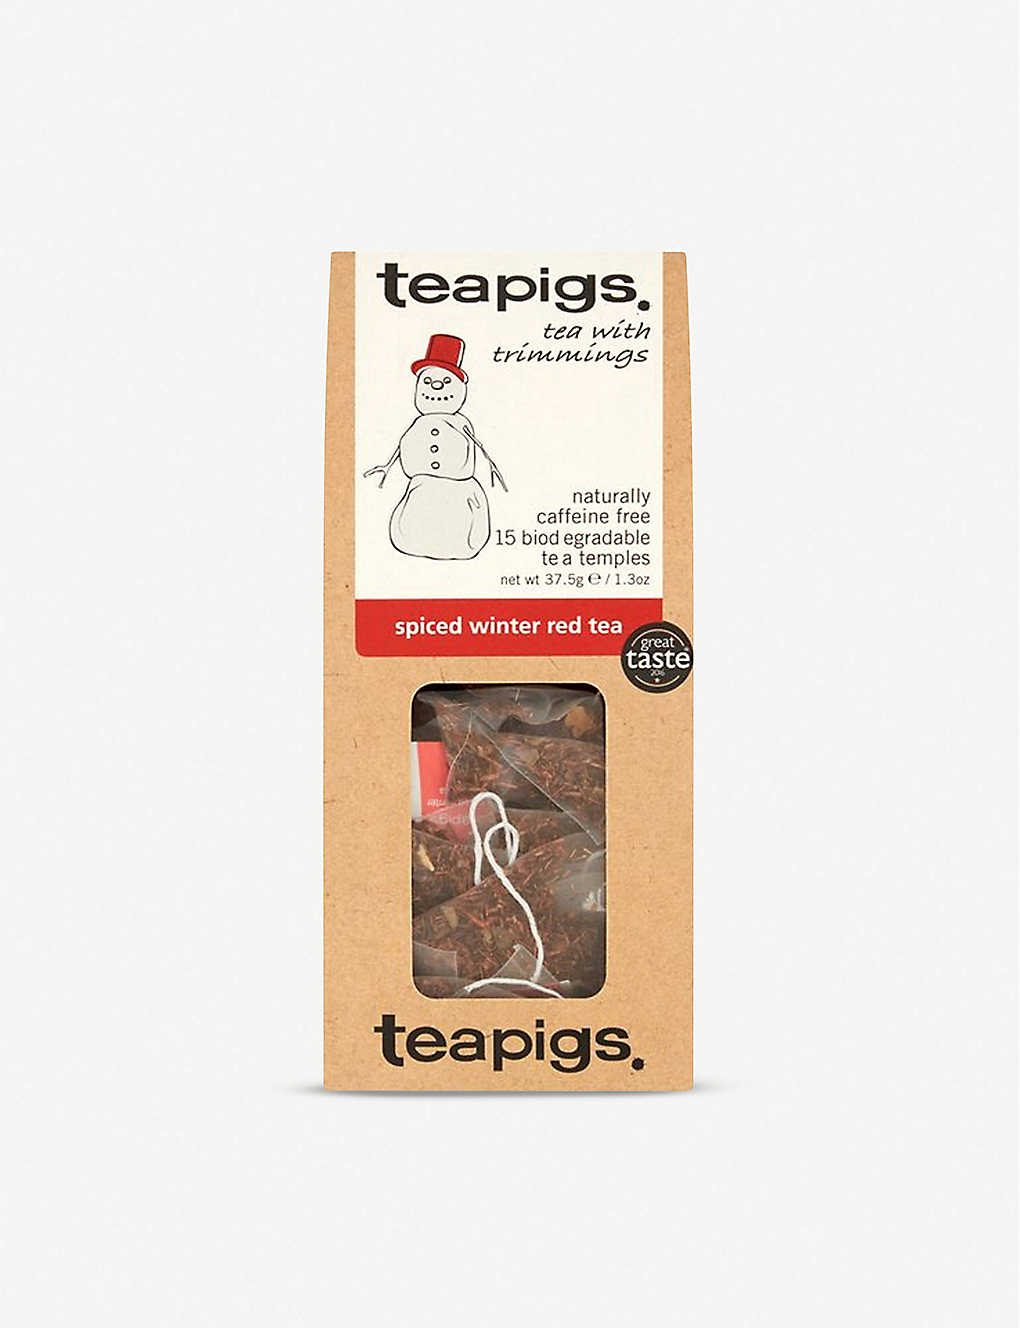 TEAPIGS: Spiced Winter Red Tea bags 37.5g